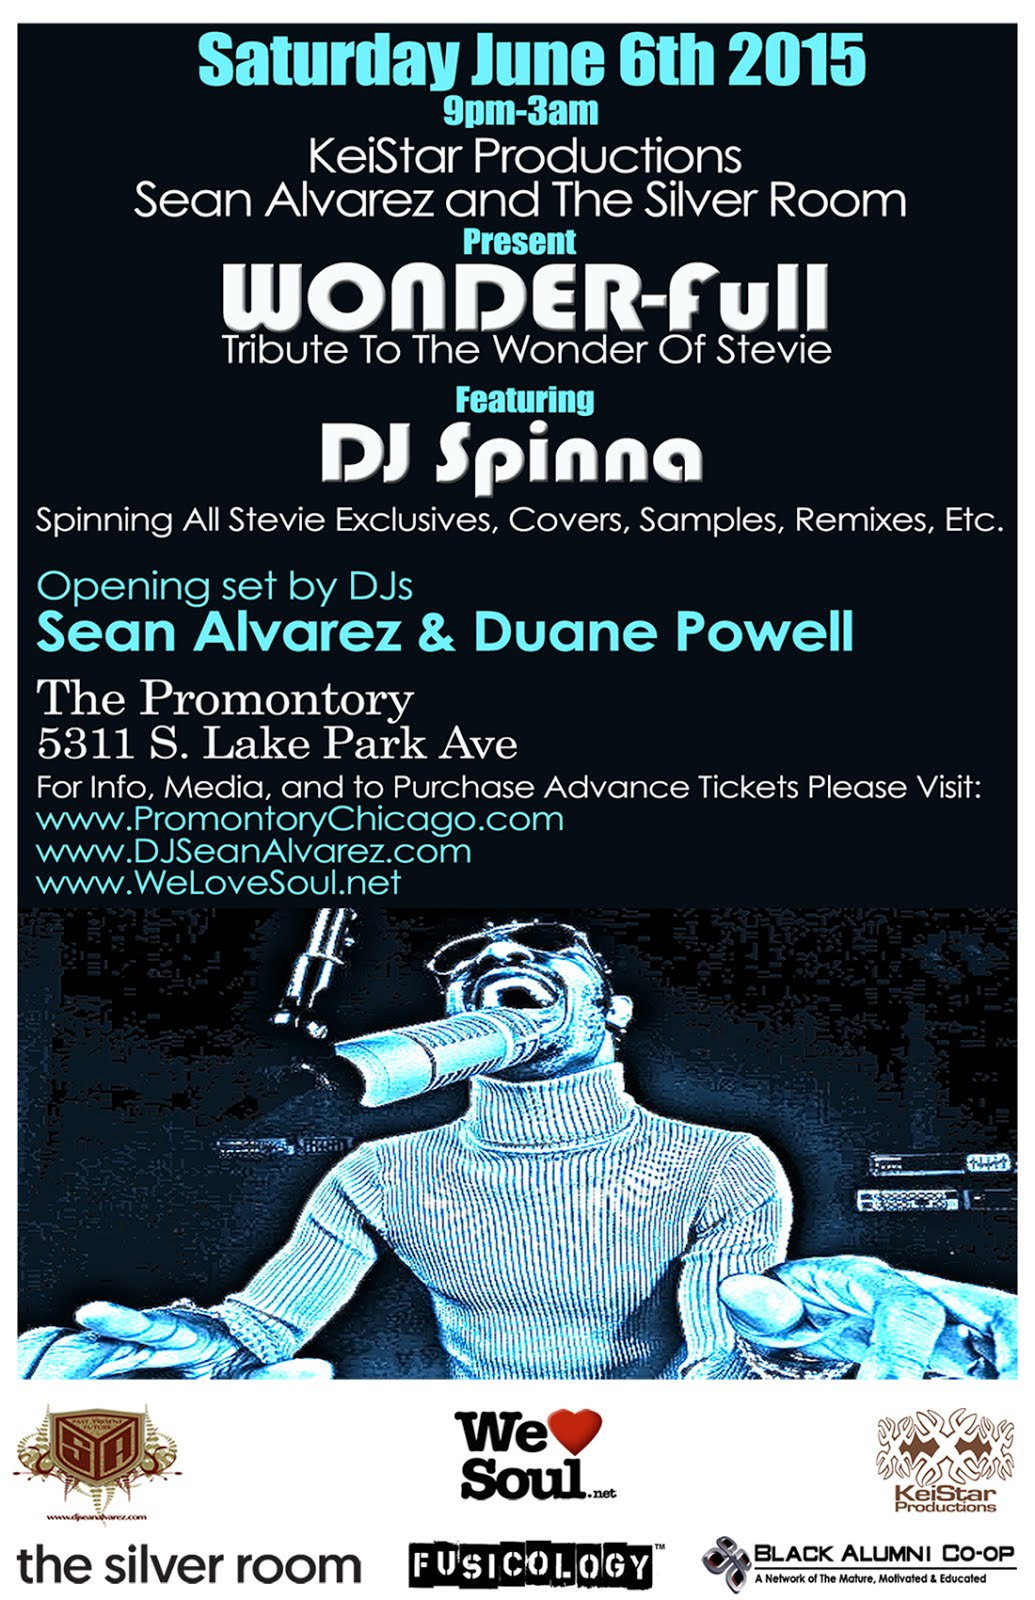 Sat June 6: WONDER-FULL w/DJ SPINNA